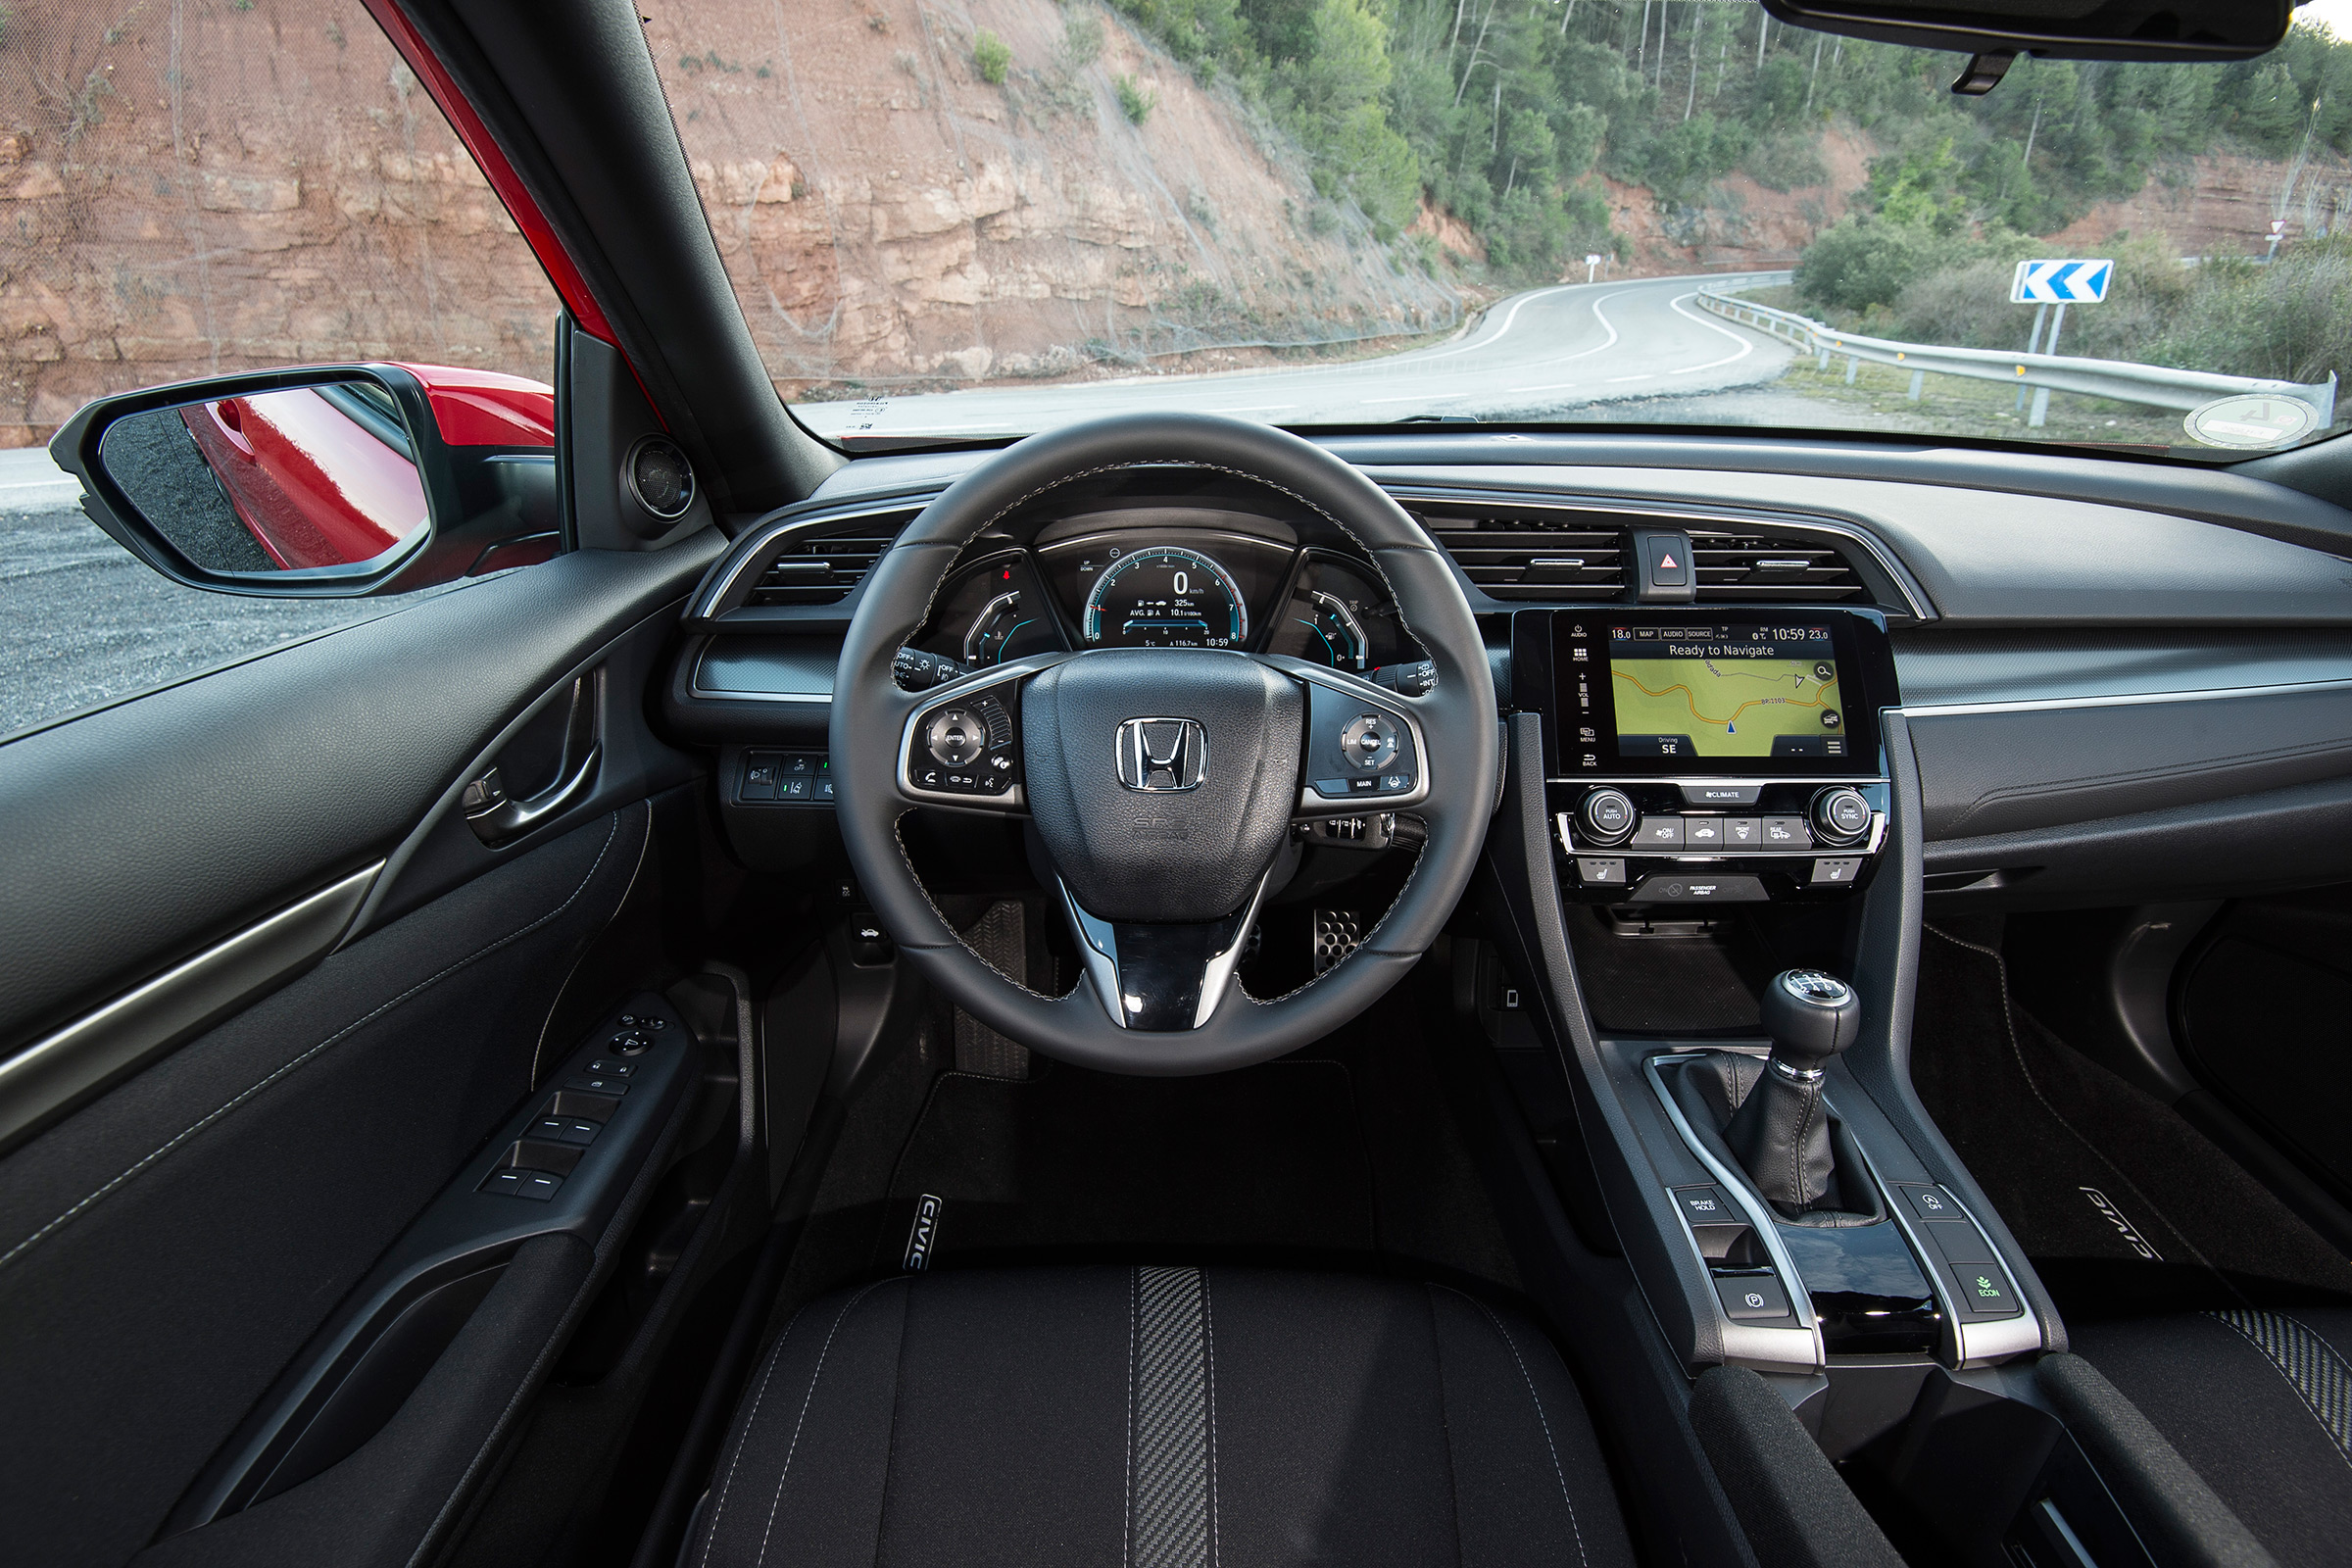 2017 Honda Civic Hatchback Interior Driver Cockpit And Dash (Photo 19 of 34)